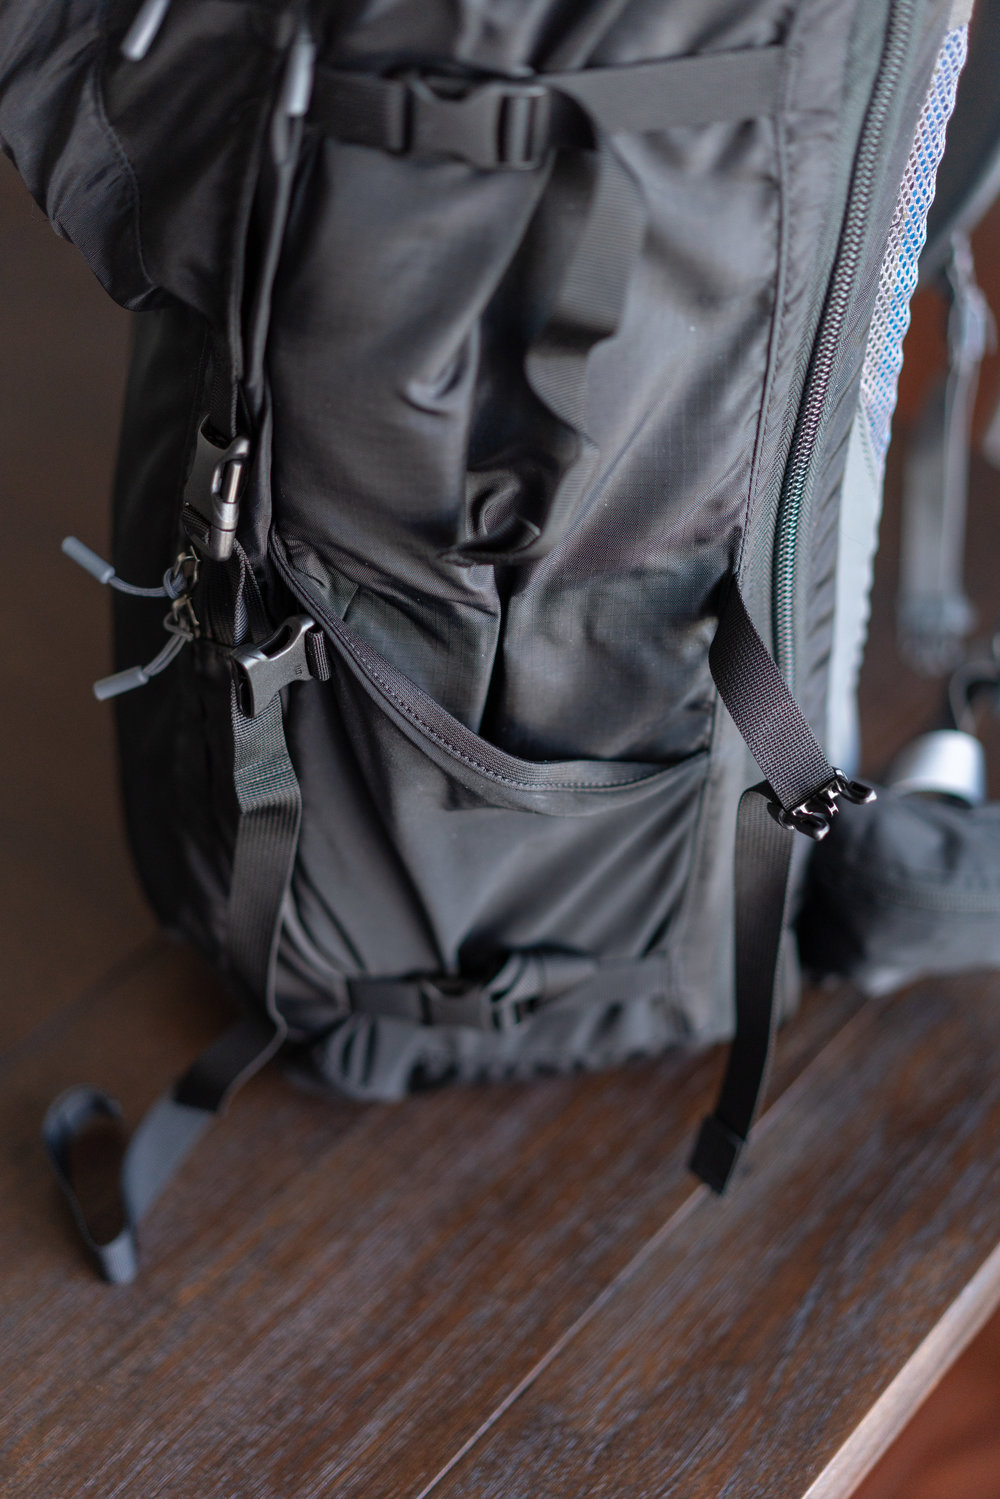 Nice side pockets for water bottles or tripod for easy carry, 1 on each side and 3 straps running length of the bag.